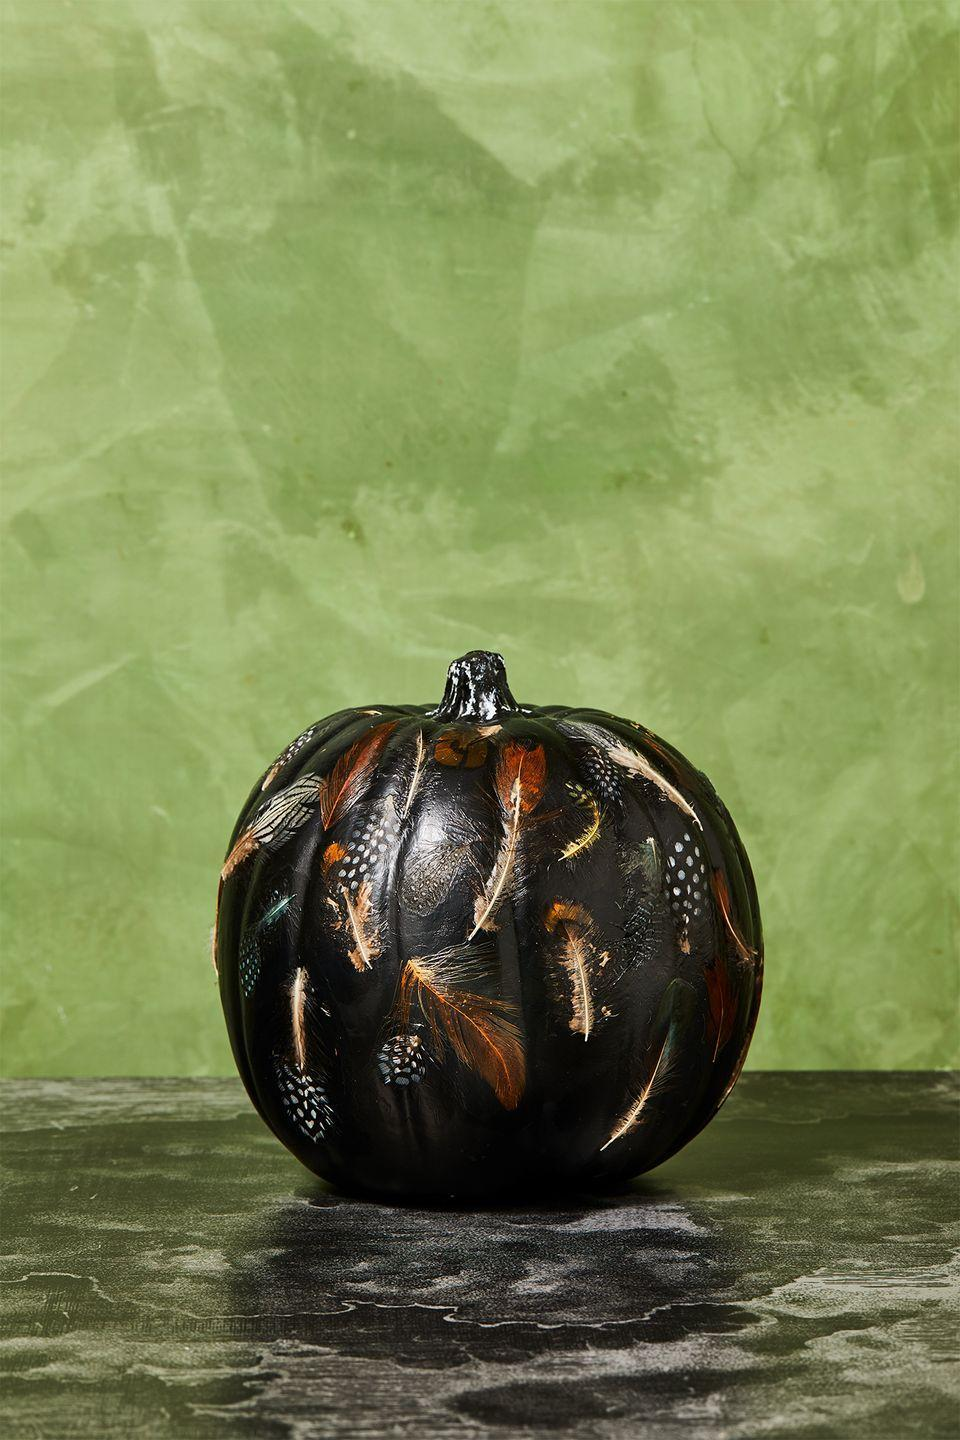 """<p>Once you've painted your pumpkin black and it's dry, grab some faux feathers and stick them to the pumpkin using Mod Podge. Then, use a brush with a little Mod Podge to smooth out the feathers on top, and let dry. </p><p><a class=""""link rapid-noclick-resp"""" href=""""https://www.amazon.com/obmwang-20-25cm-Pheasant-Feathers-Decorations/dp/B088K8KCHL/ref=sr_1_7?tag=syn-yahoo-20&ascsubtag=%5Bartid%7C10055.g.2592%5Bsrc%7Cyahoo-us"""" rel=""""nofollow noopener"""" target=""""_blank"""" data-ylk=""""slk:SHOP FEATHERS"""">SHOP FEATHERS</a></p>"""